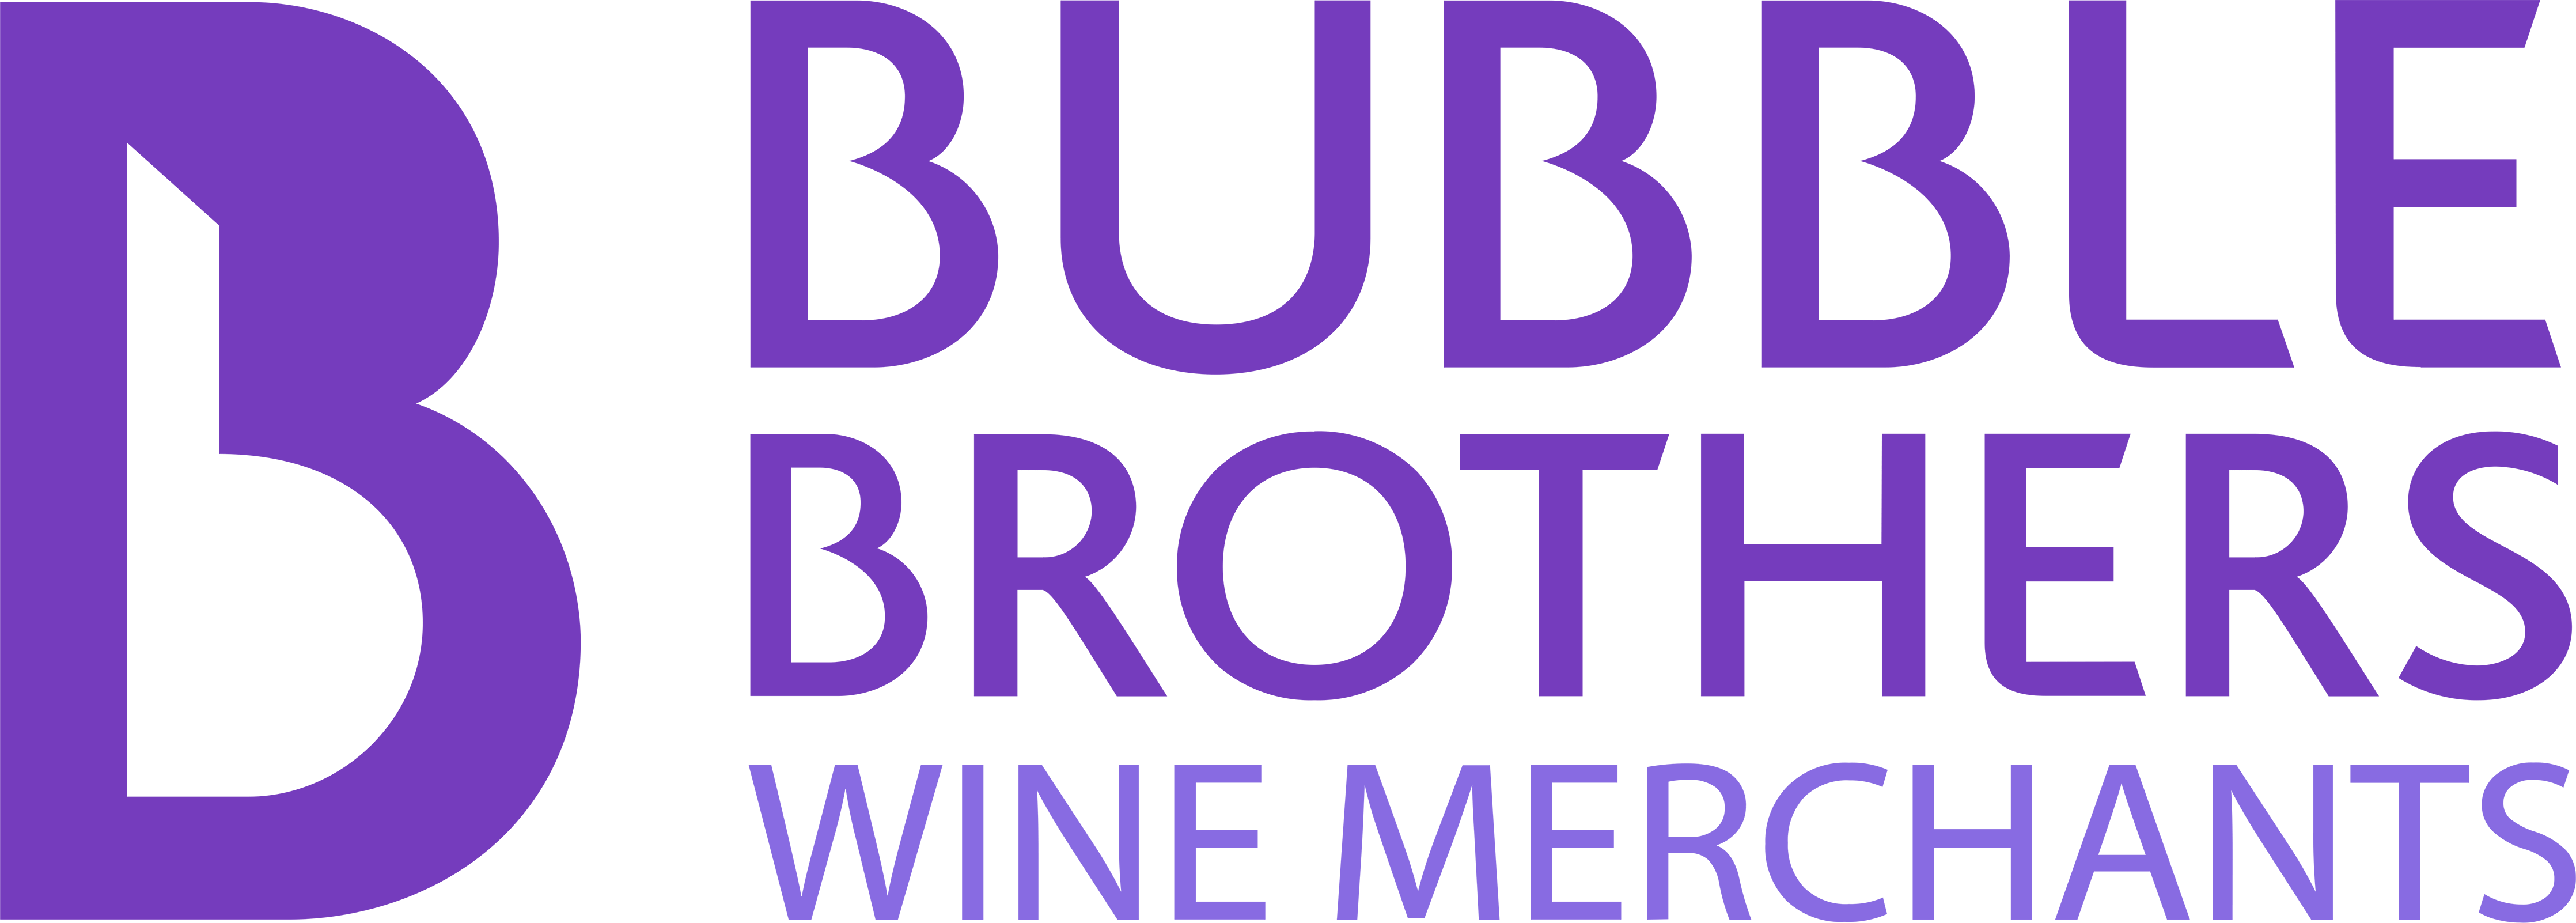 Bubble Brothers image